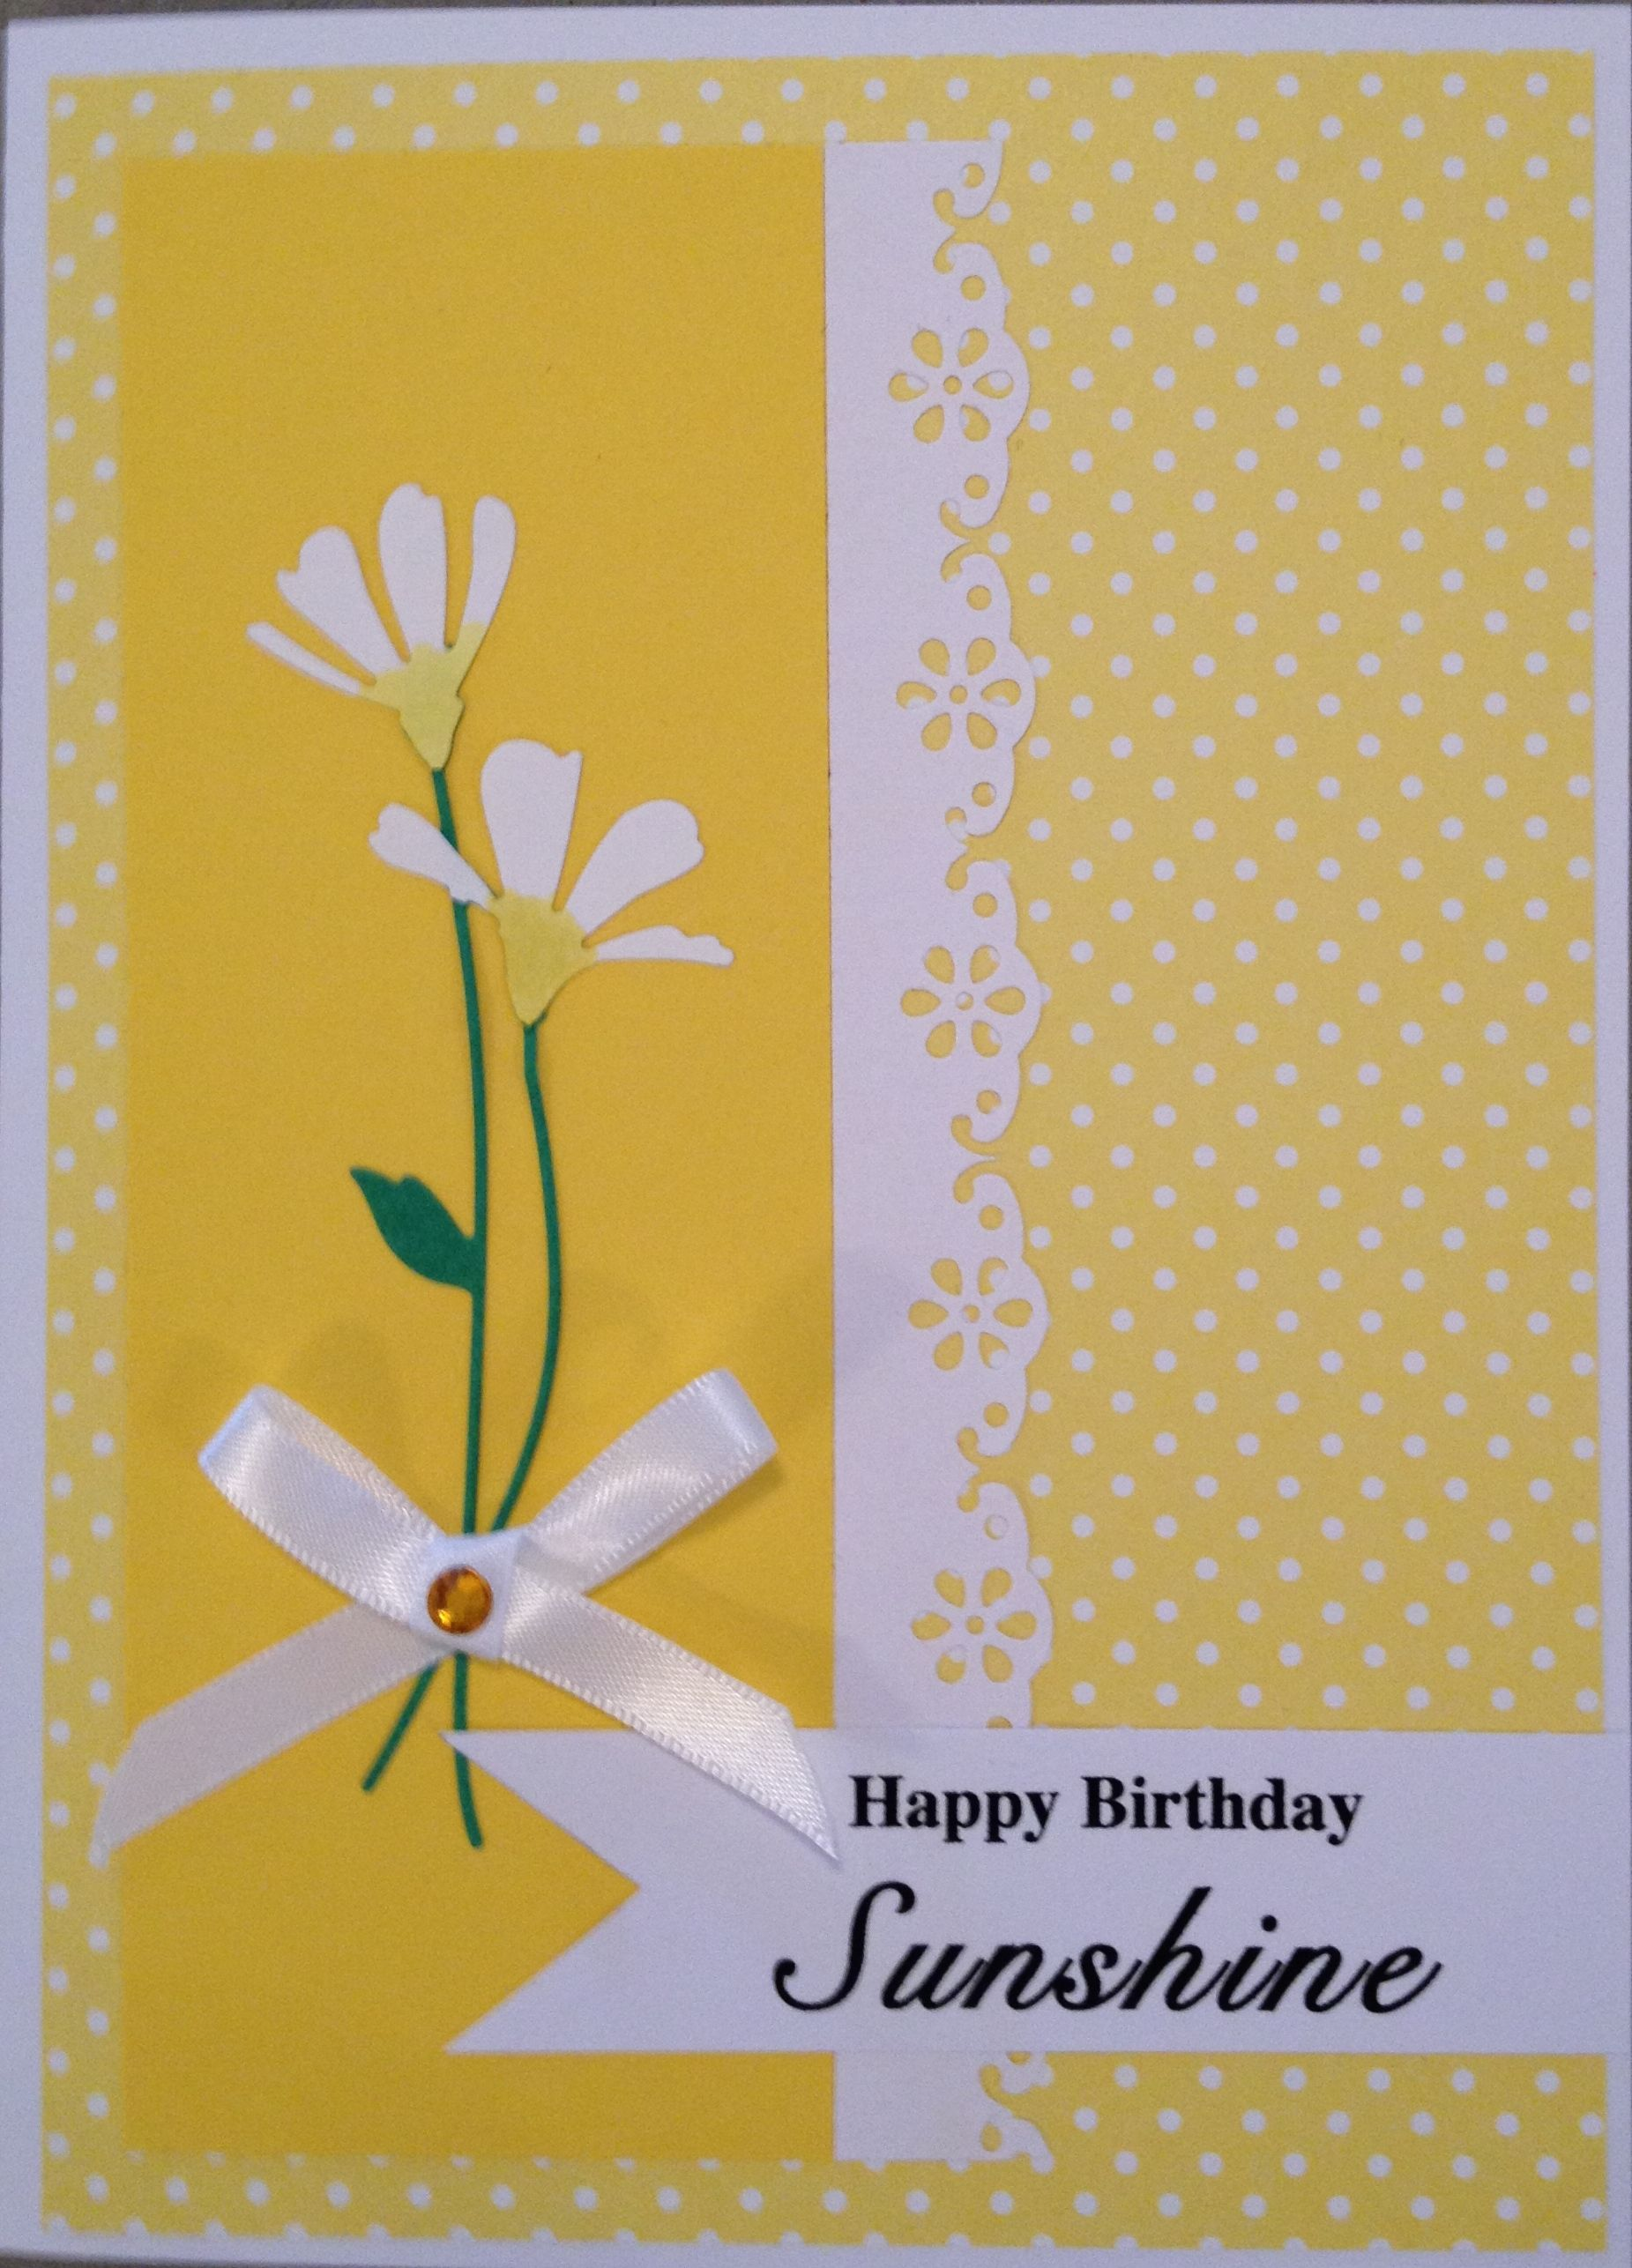 Bright yellow polka dot paper and solid yellow paper used simon